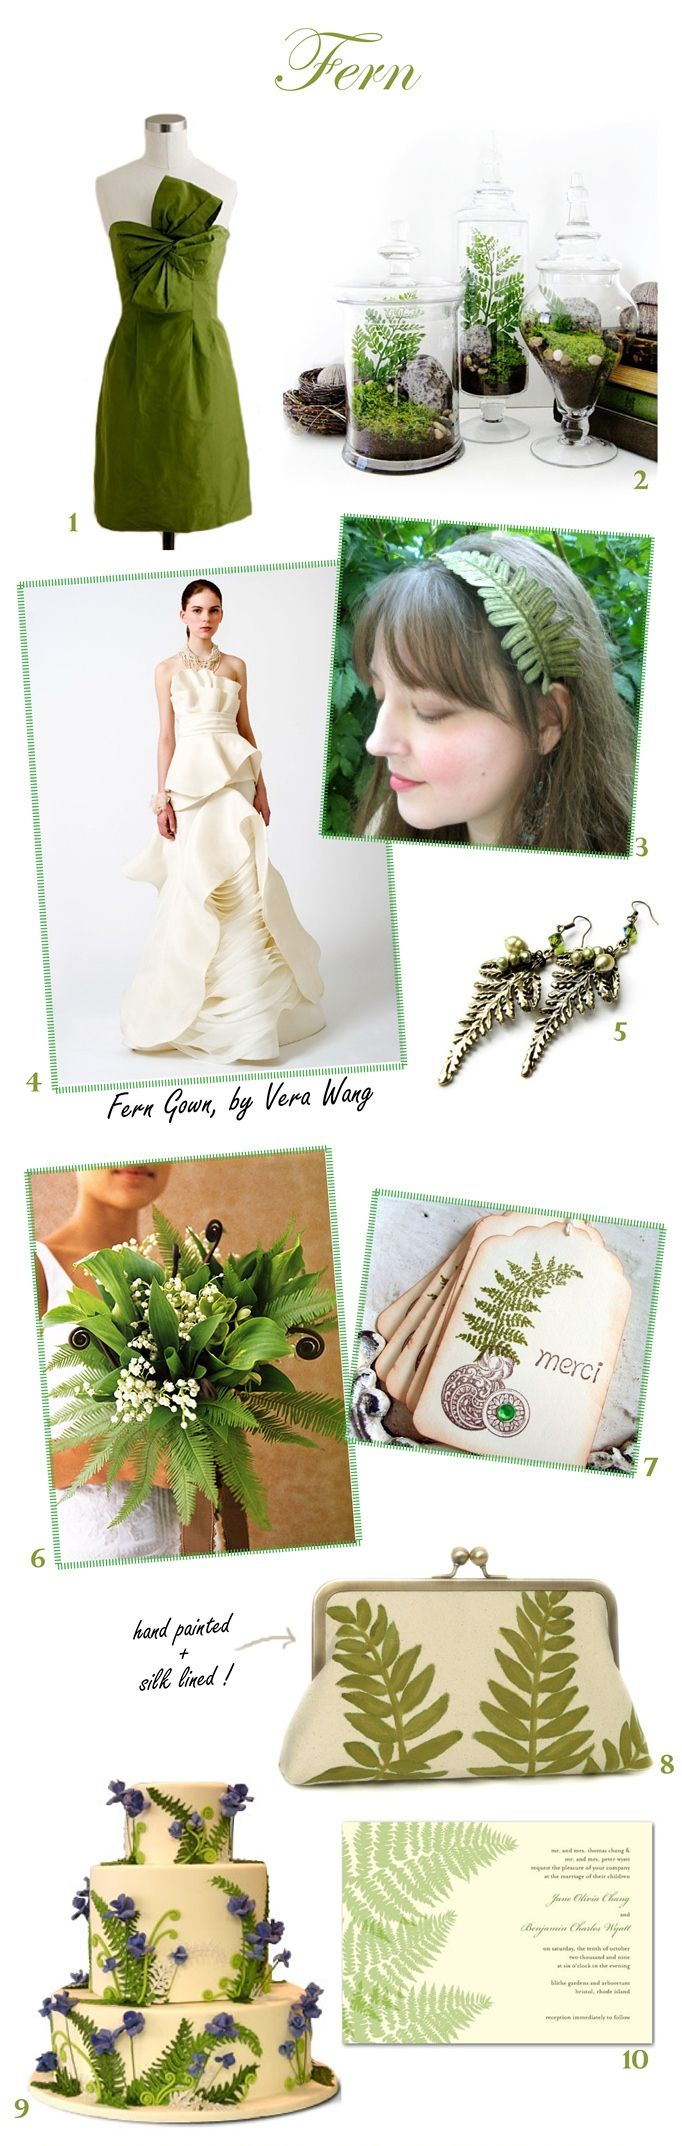 #Fern #Green #Wedding #Inspiration from sweetvioletbride.com love those fern jars... Maybe add pansies and violas